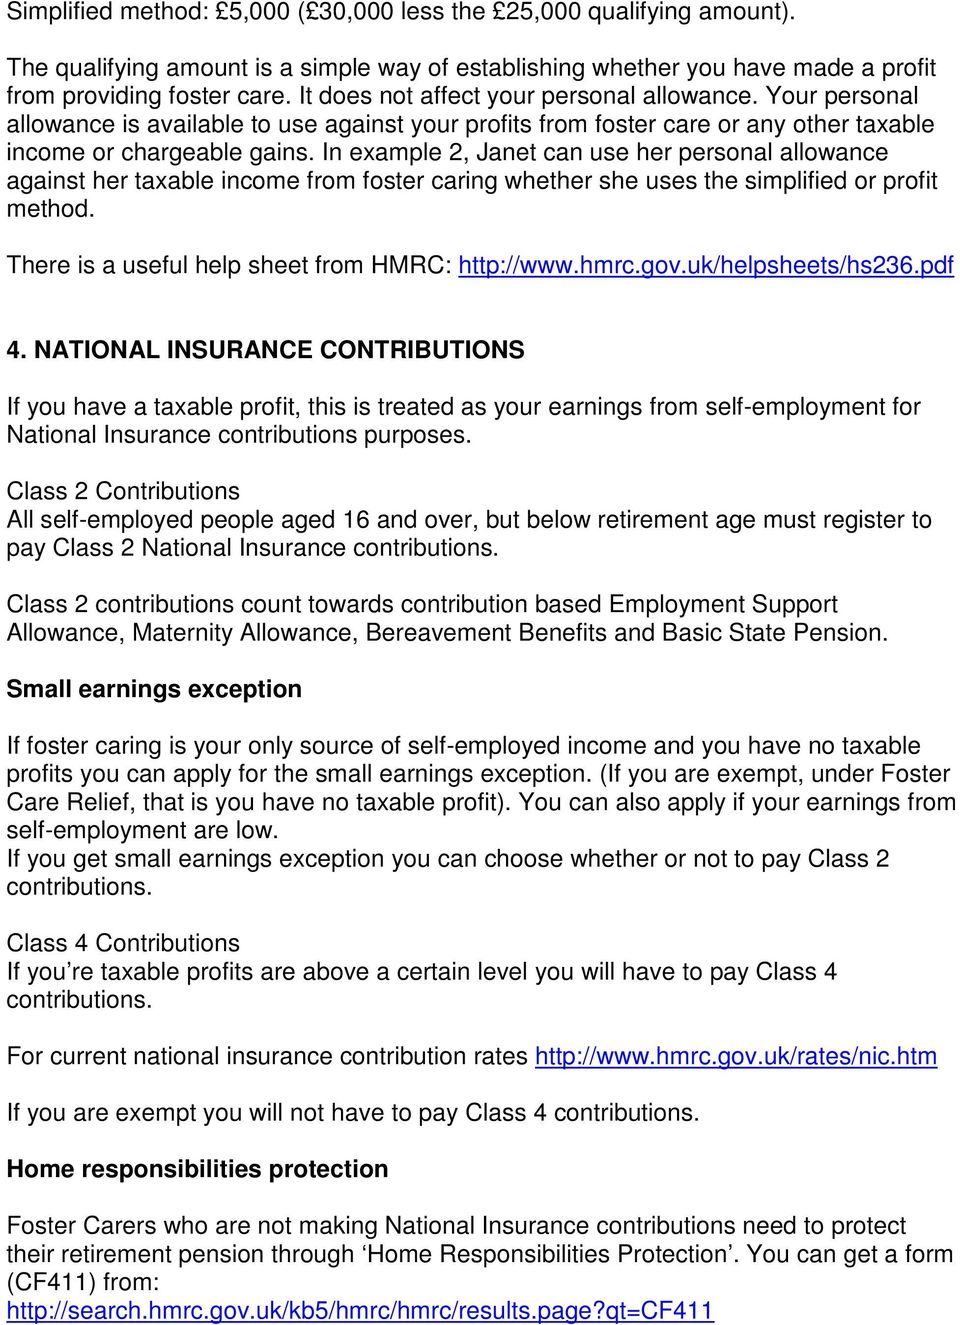 Class 4 national insurance contributions rates